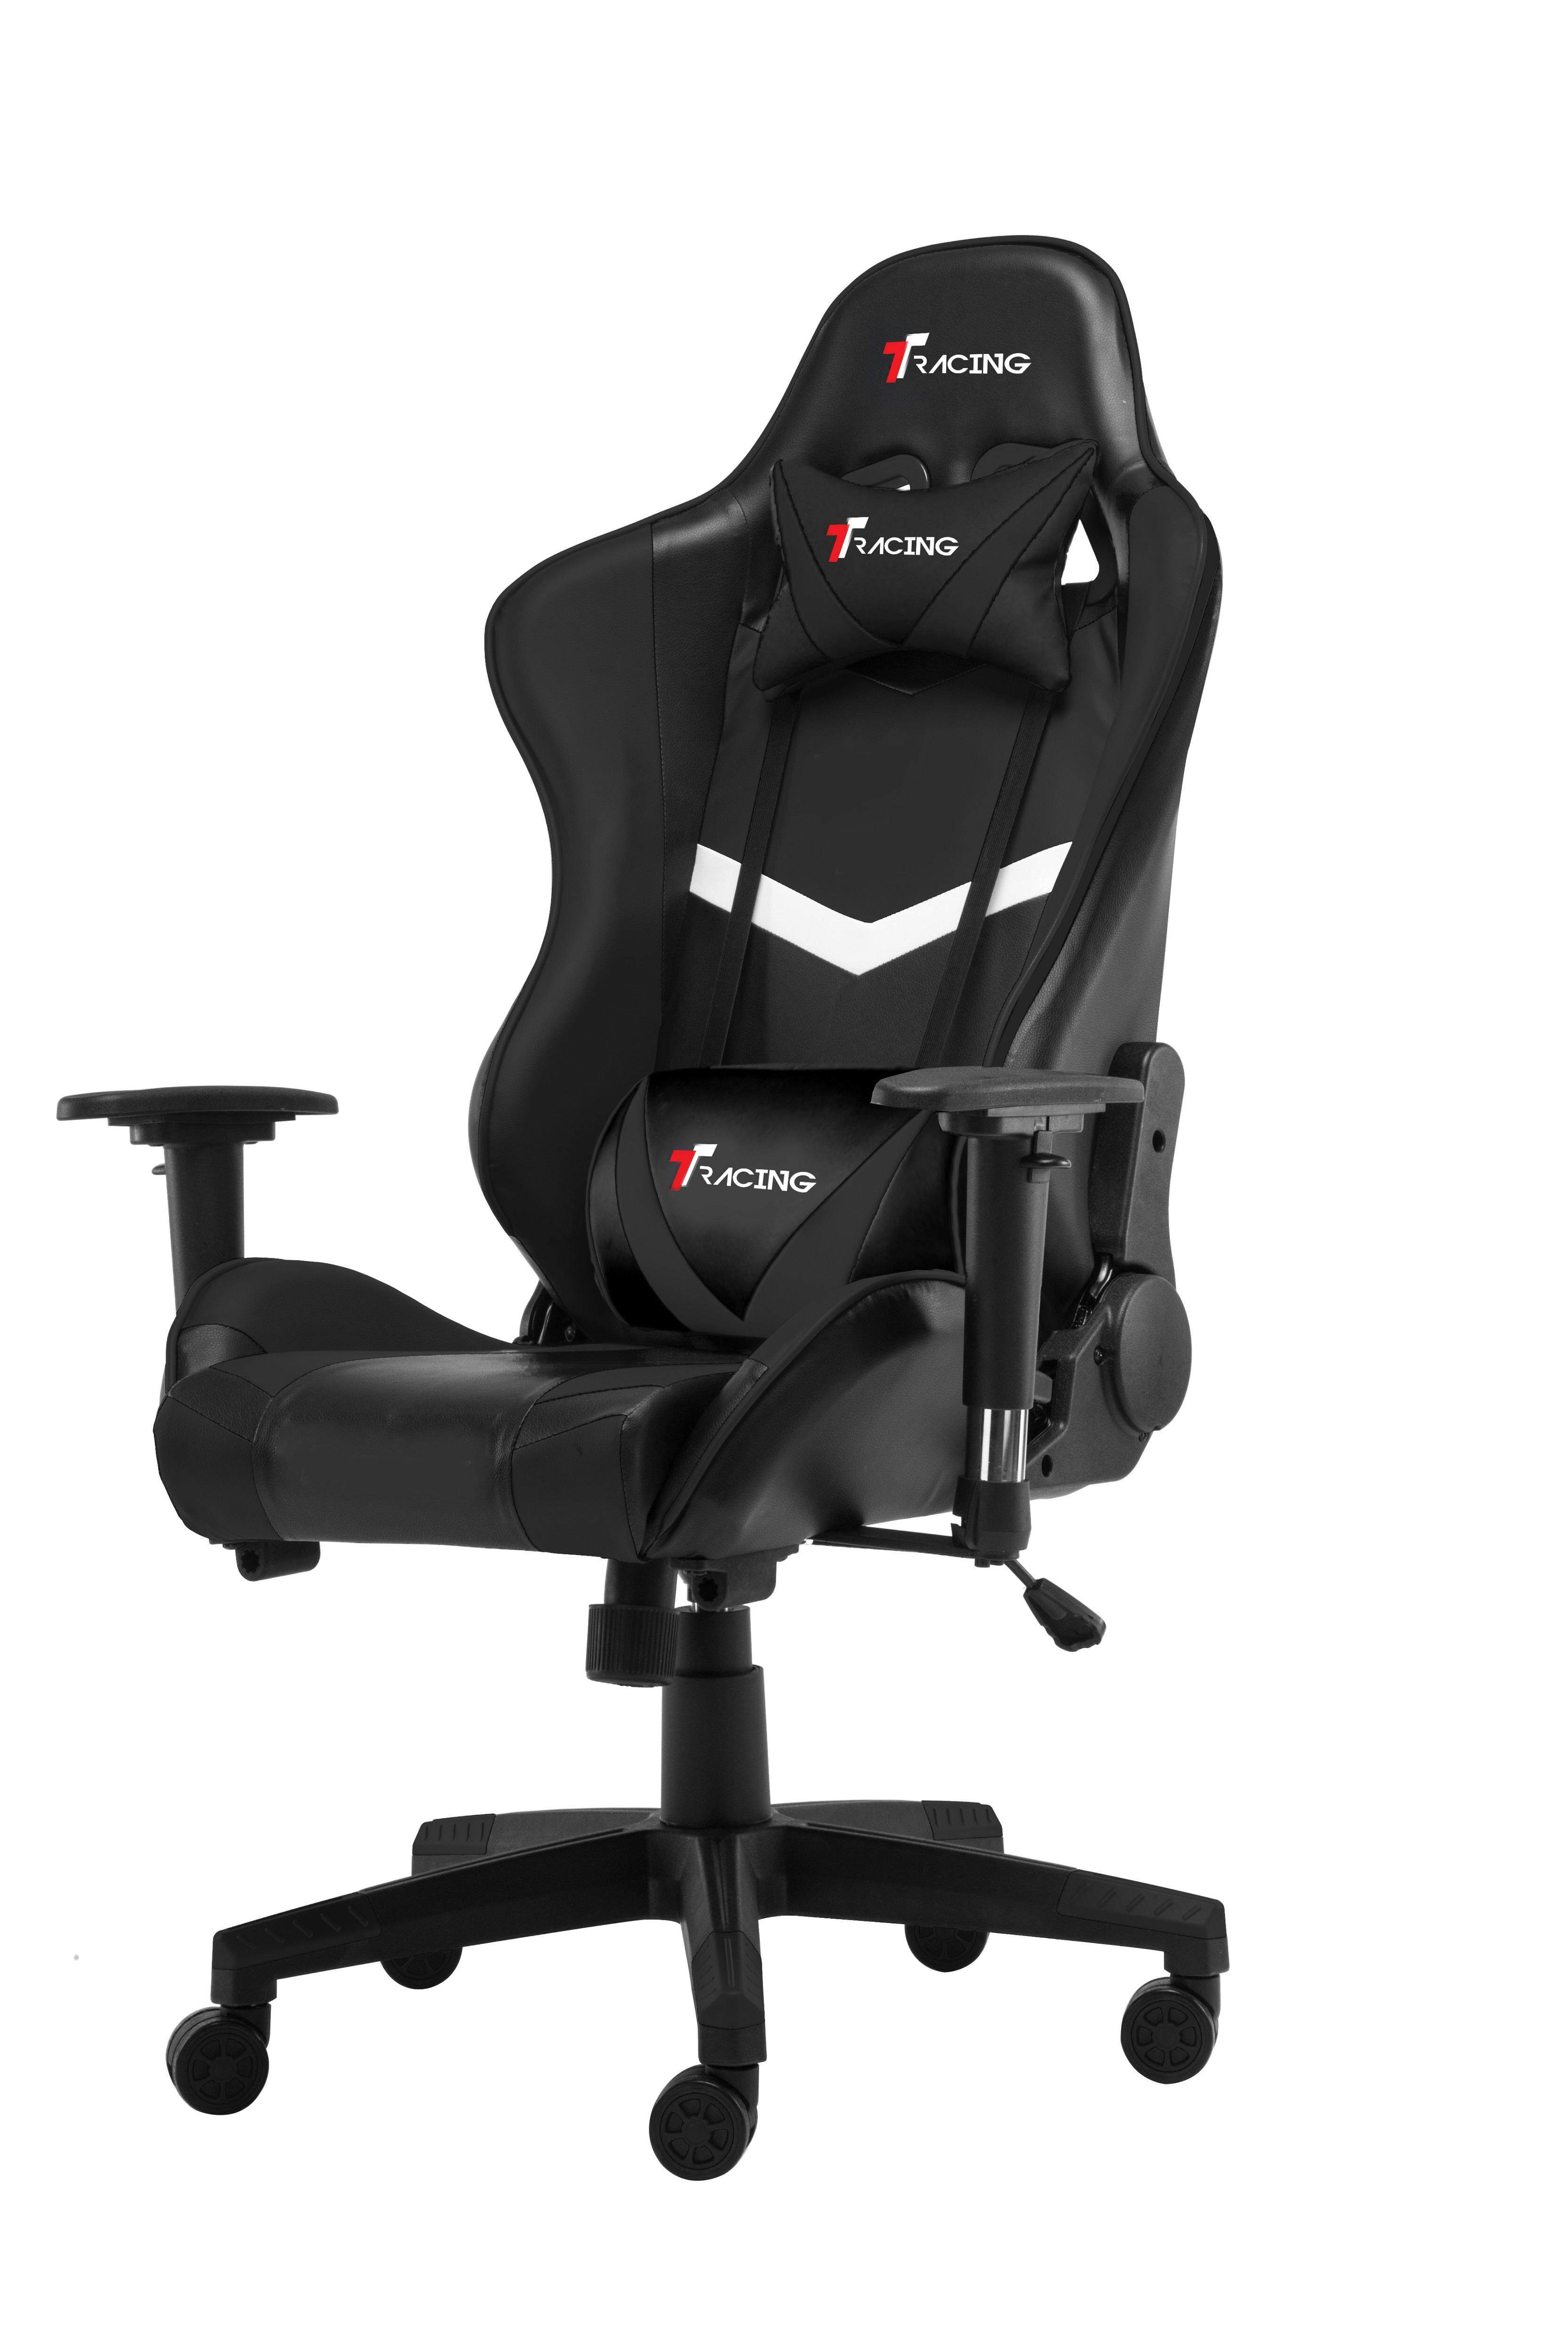 Outstanding Ttracing Swift X Gaming Chair Spiritservingveterans Wood Chair Design Ideas Spiritservingveteransorg